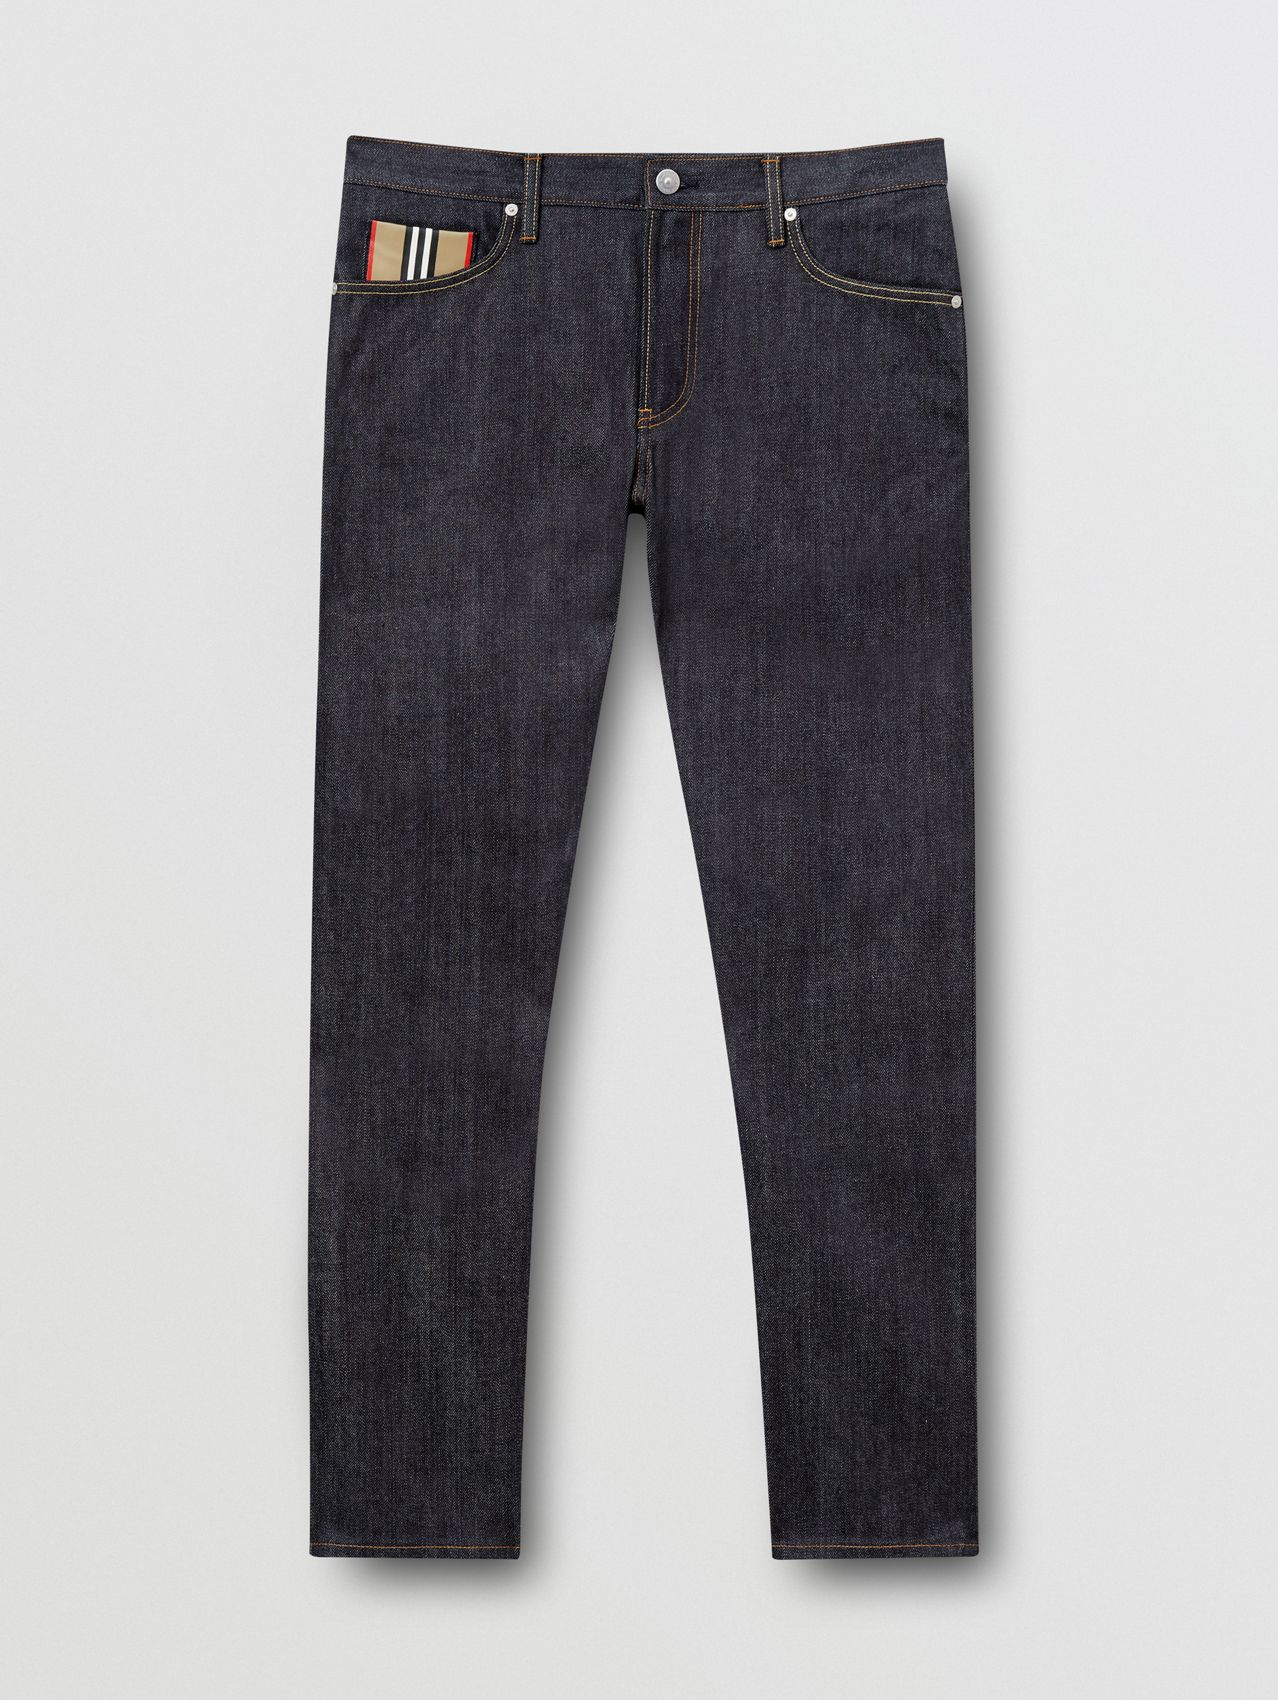 Straight Fit Raw Japanese Selvedge Denim Jeans